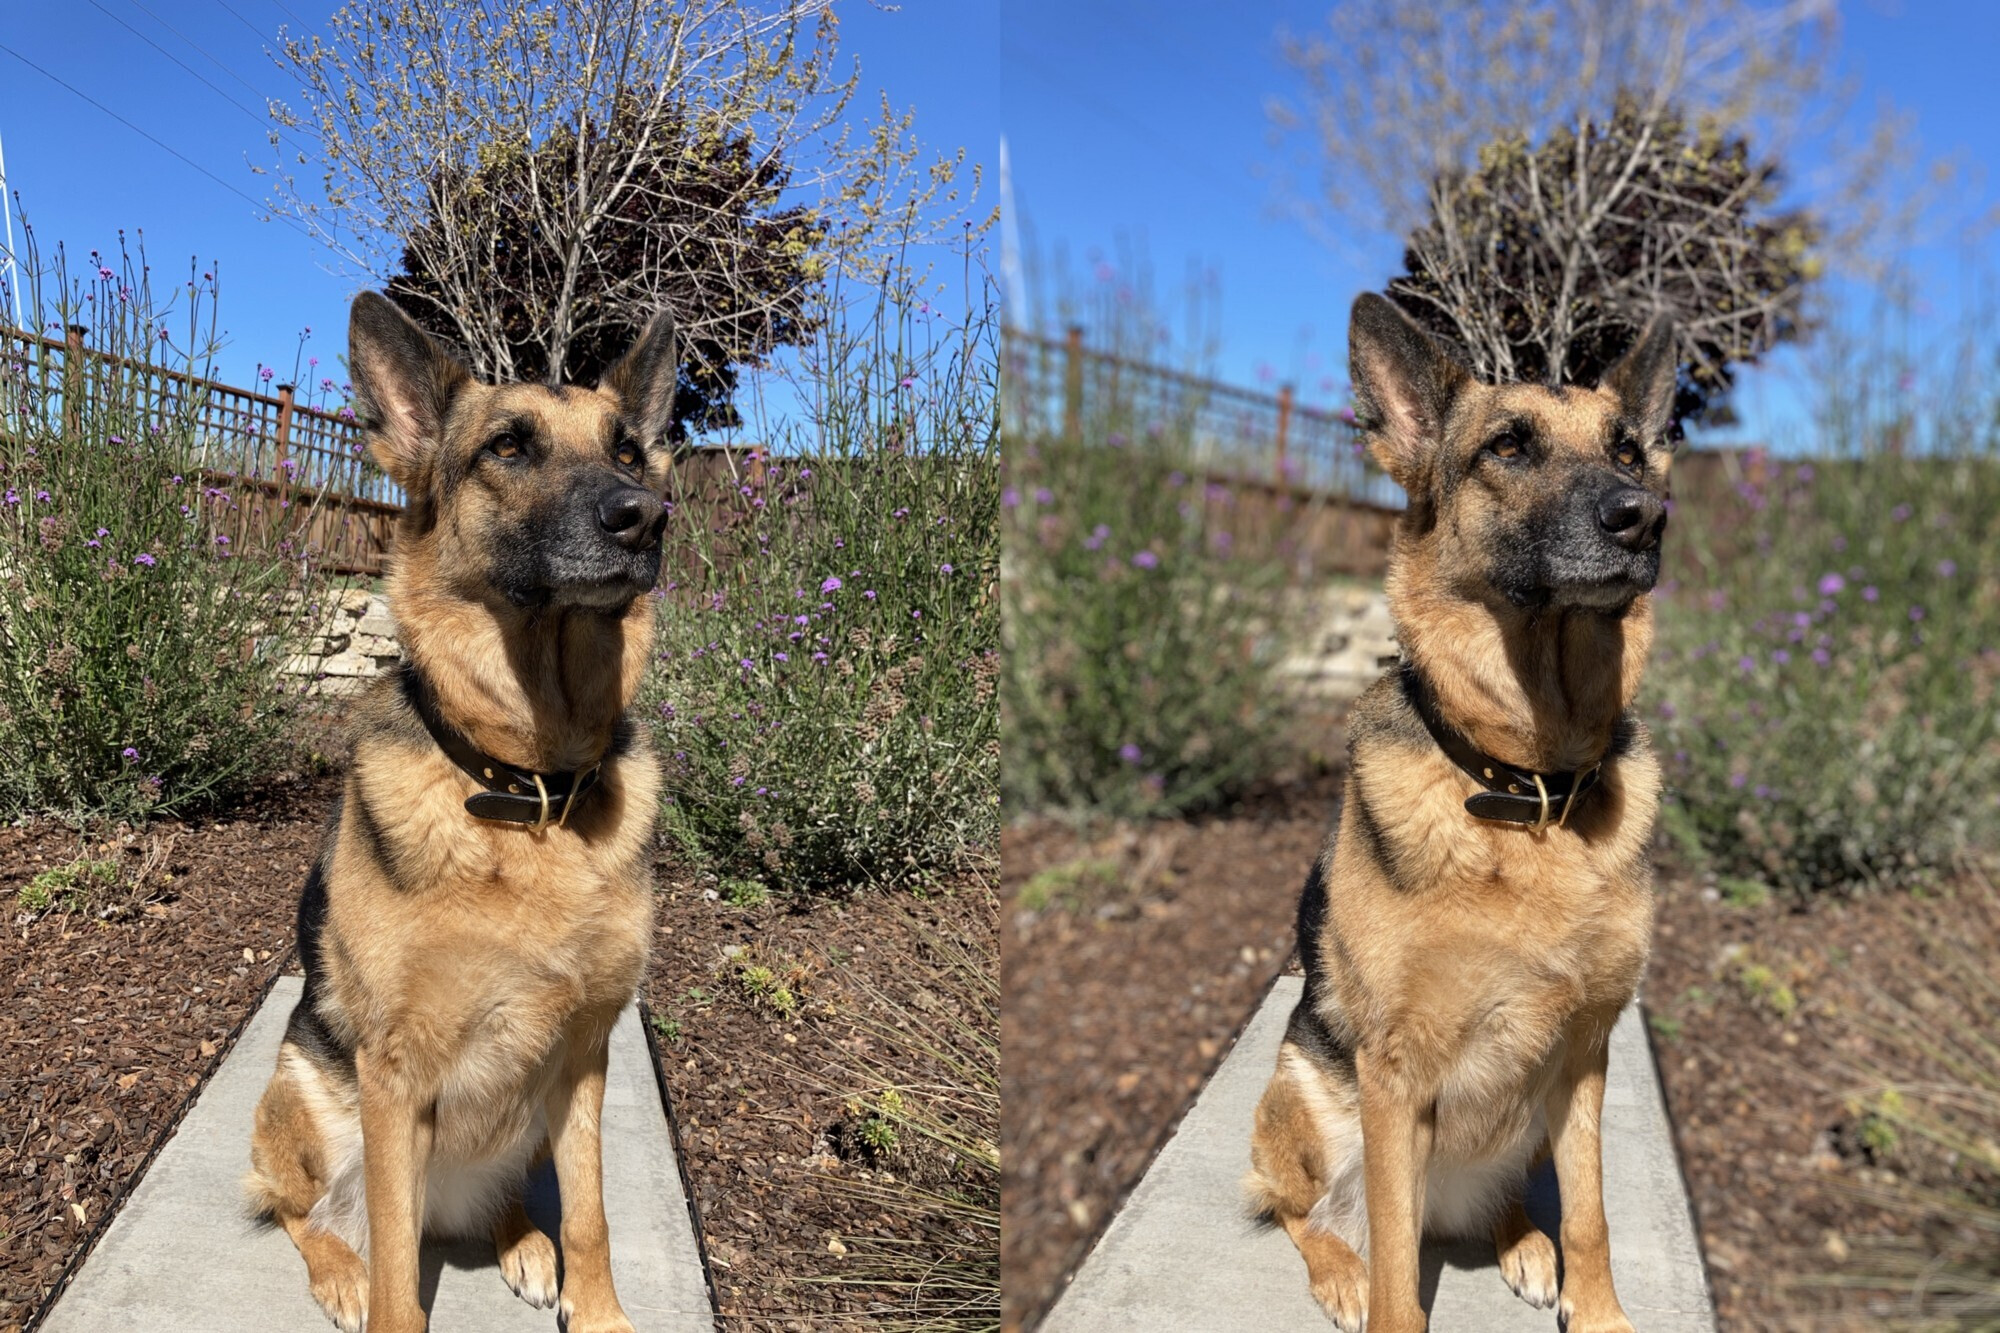 The SE uses machine learning to detect human subjects with great results, but the same can't be said for non-human subjects, so Apple disabled that option in its camera app. - Developer tests 2020 iPhone SE camera, results show impressive photography for a single-camera setup